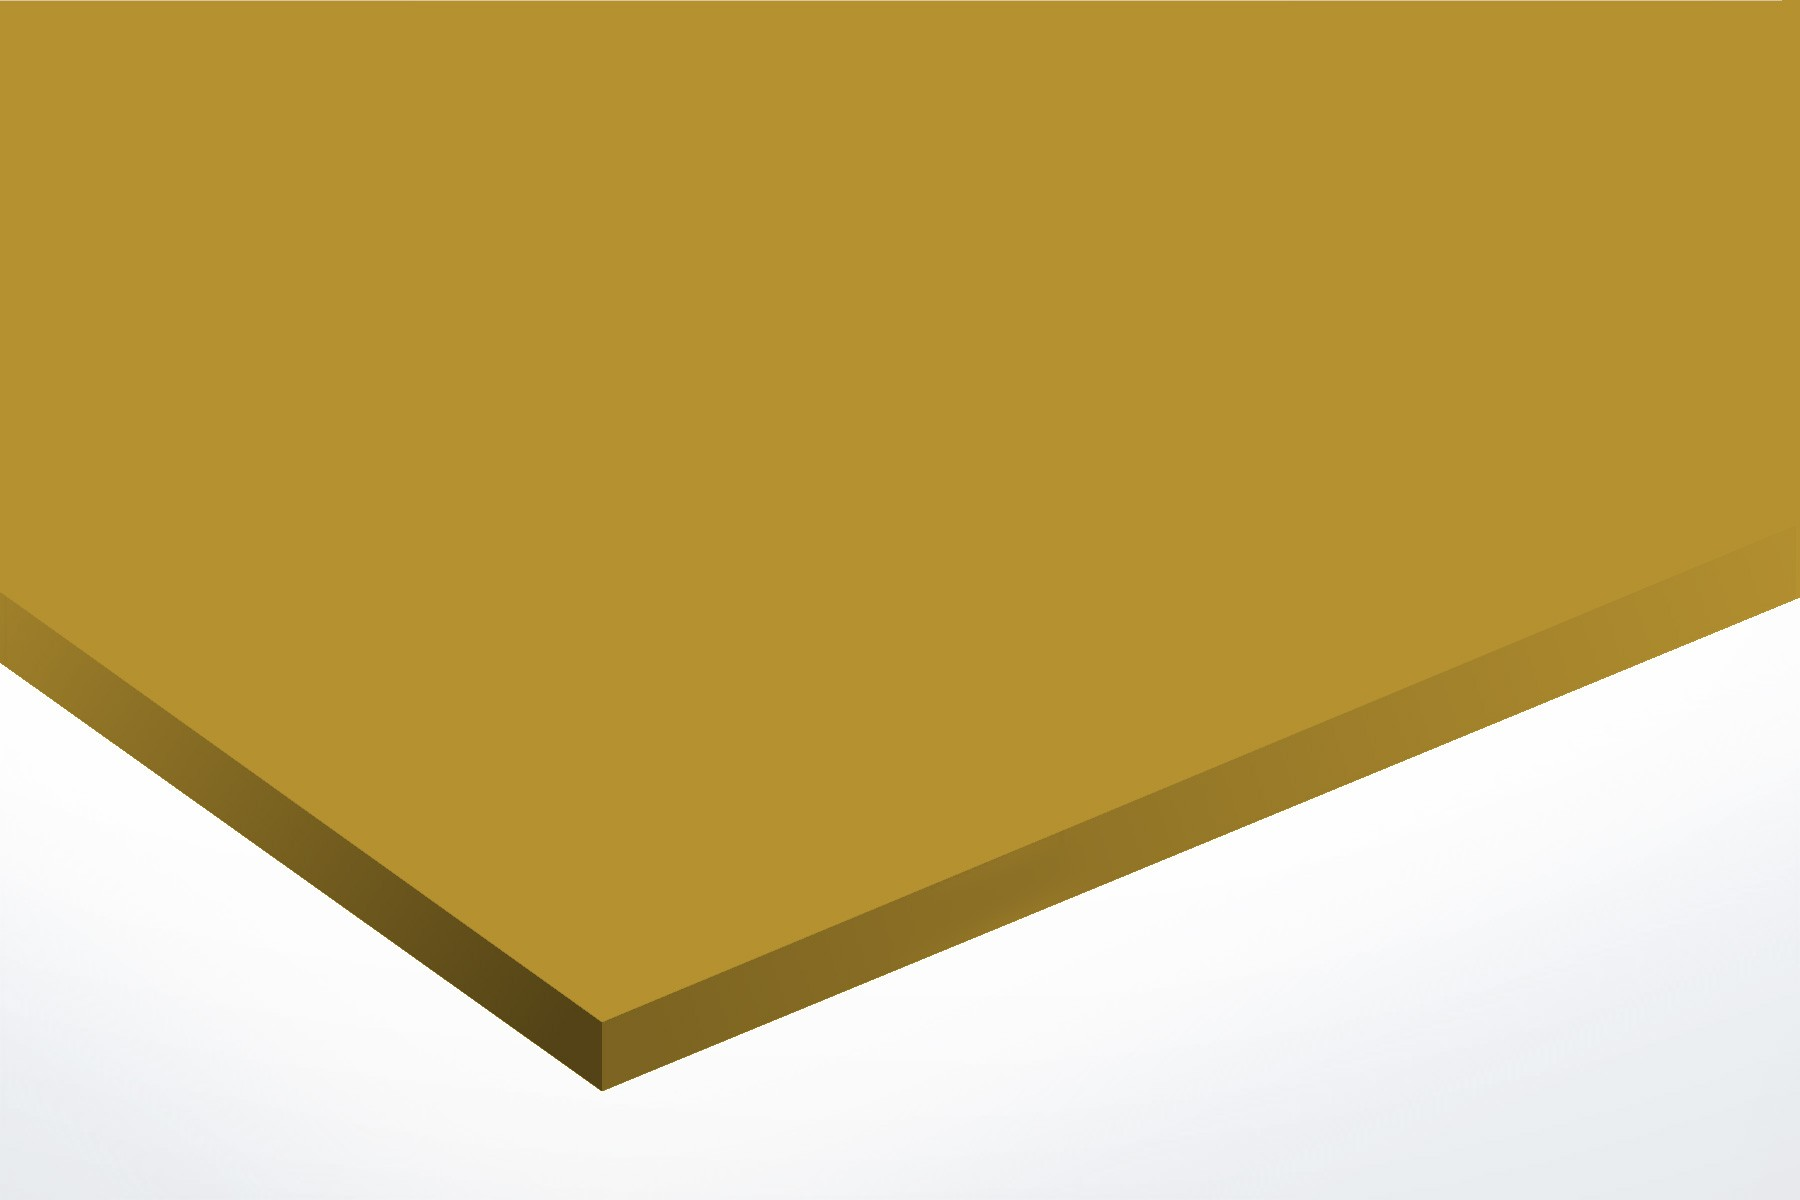 Anodised Aluminium Gold,  Matt, 1mm x 1000mm x 500mm